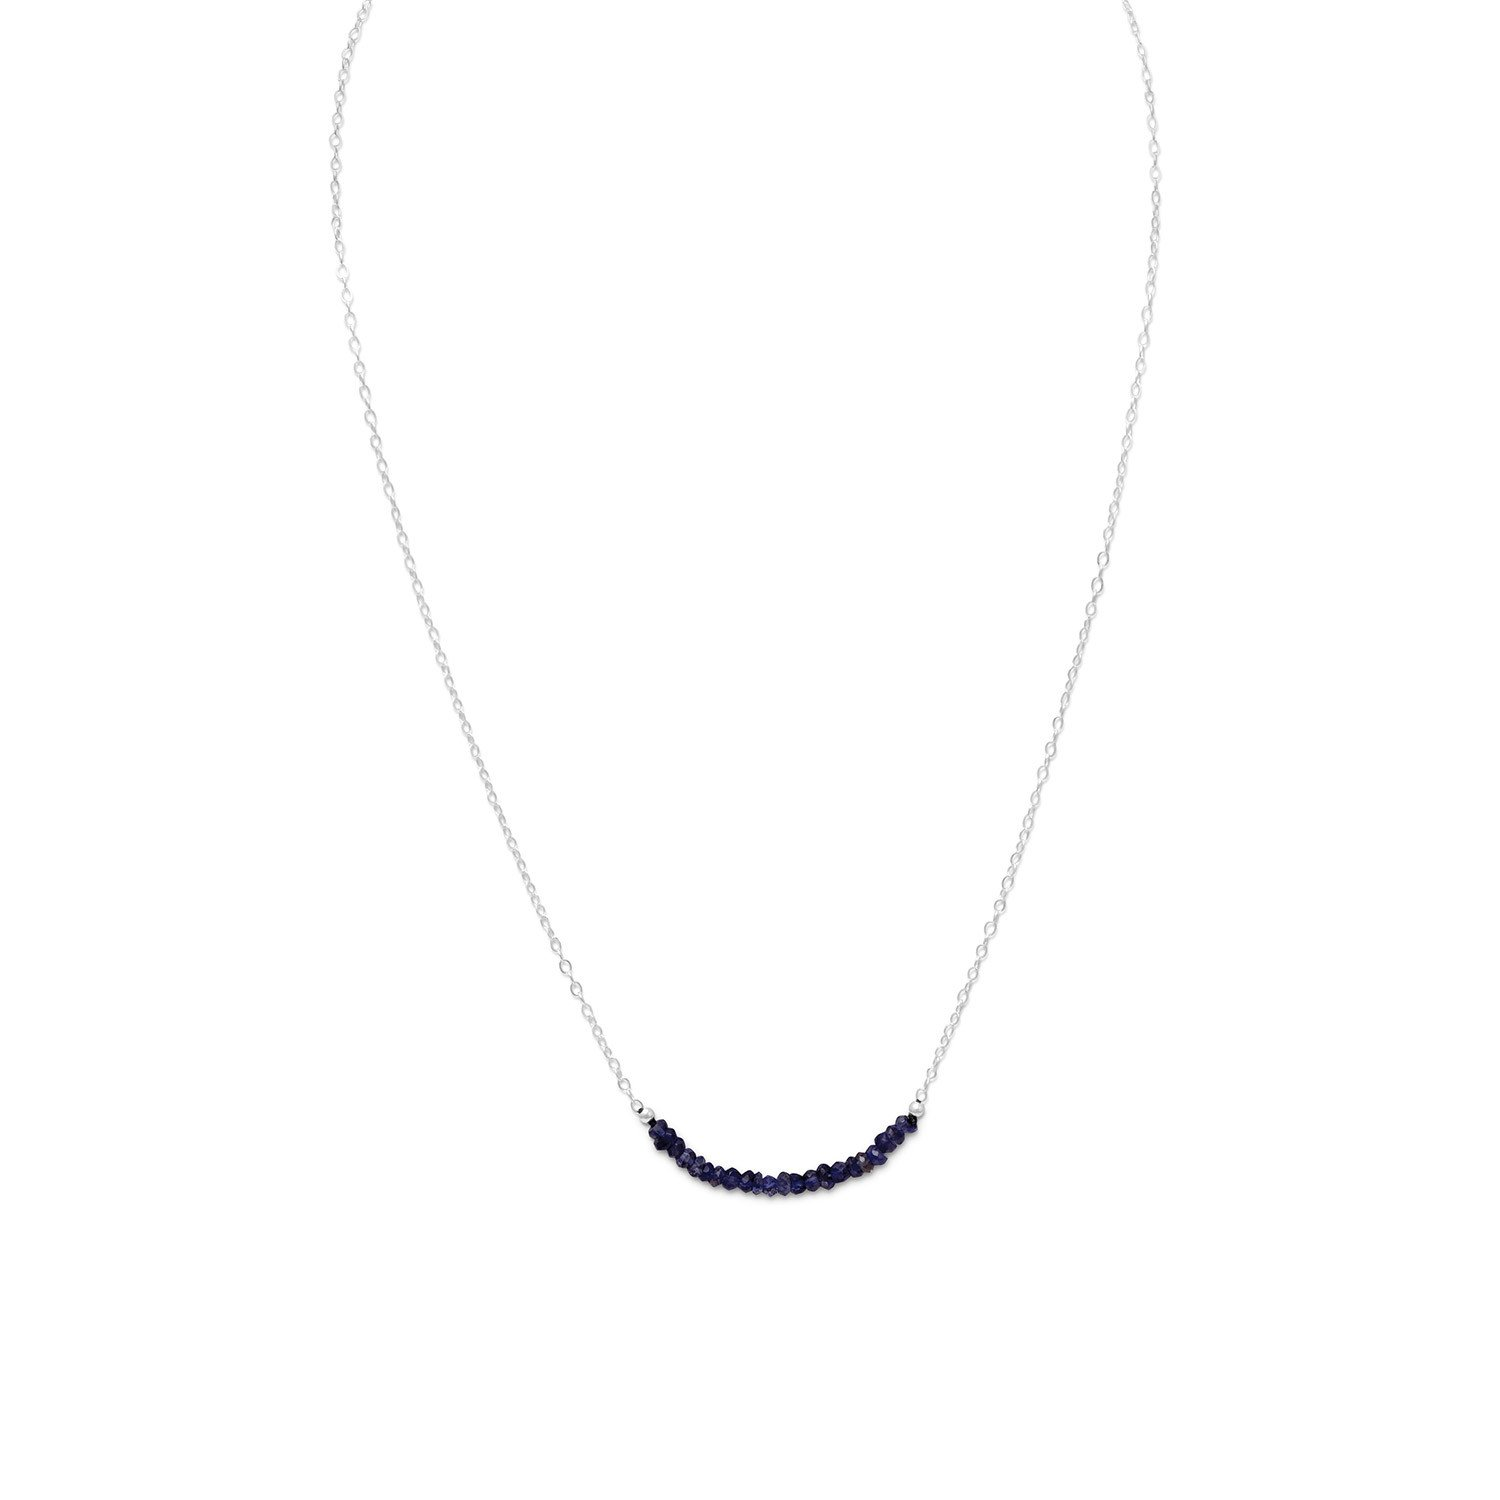 Faceted Iolite Bead Necklace – September Birthstone